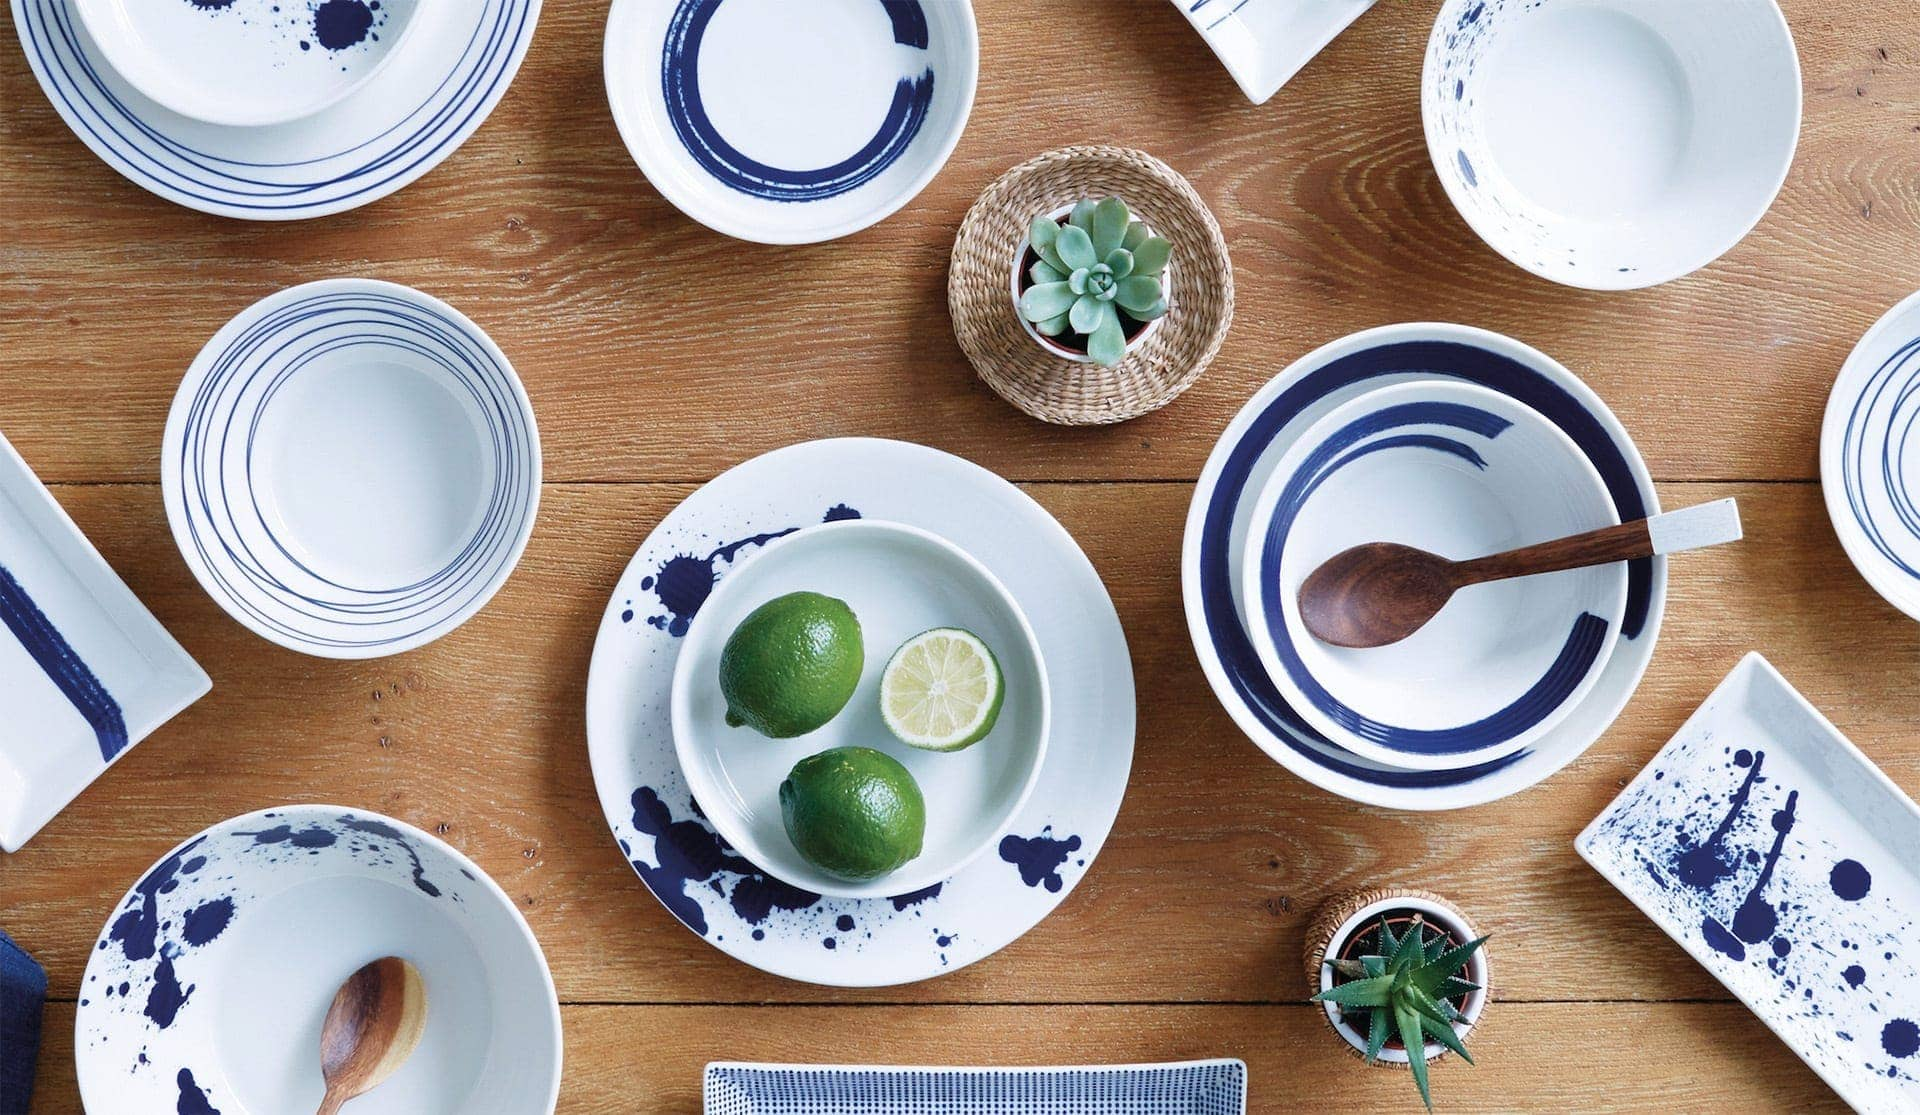 blue and white hamptons style dinnerware with limes in white bowl